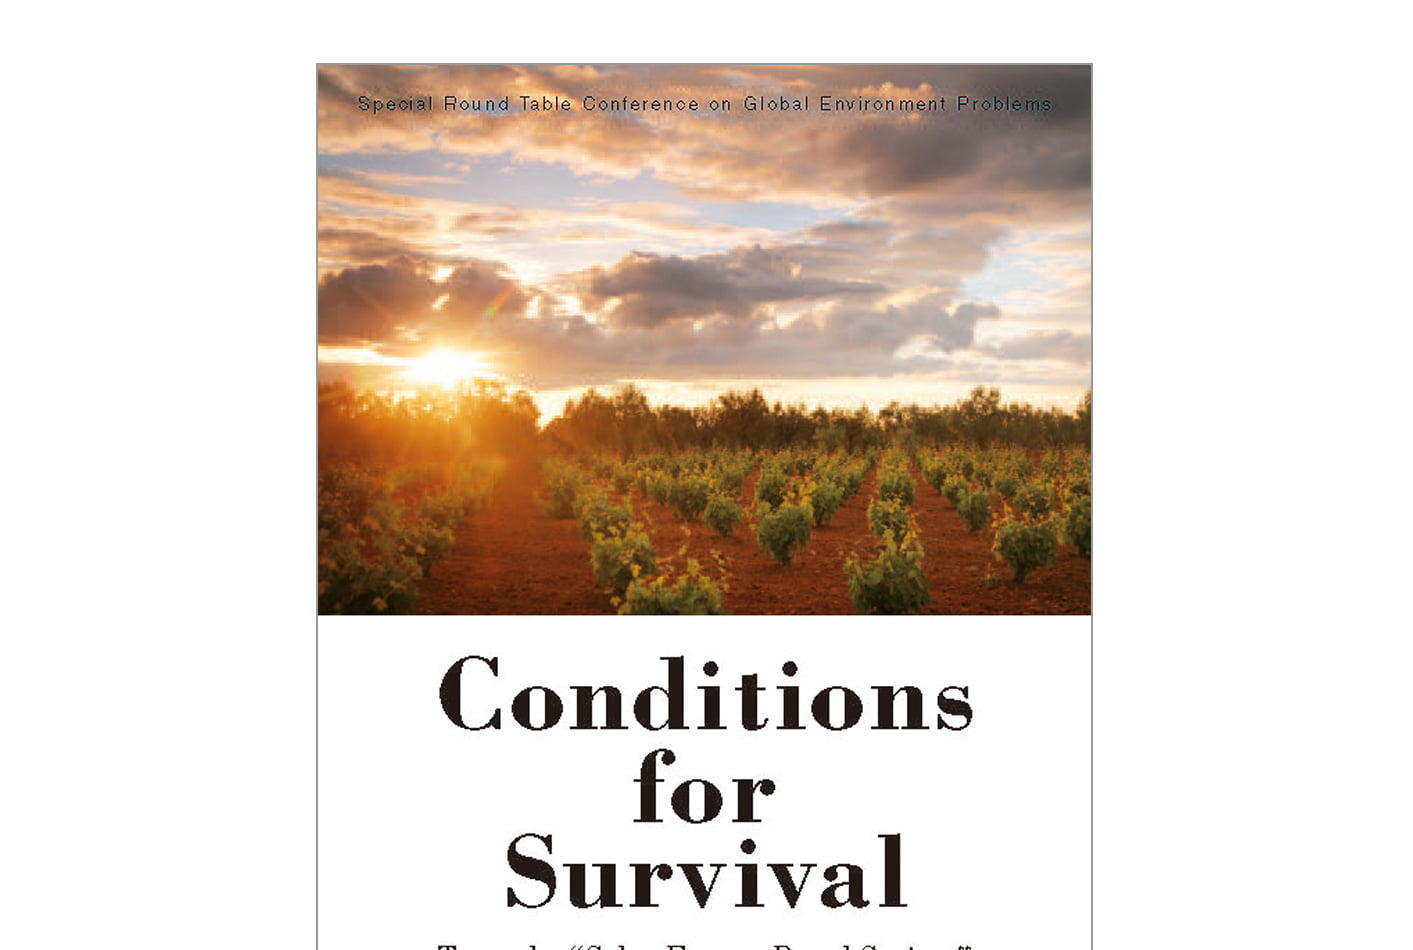 Conditions for Survival